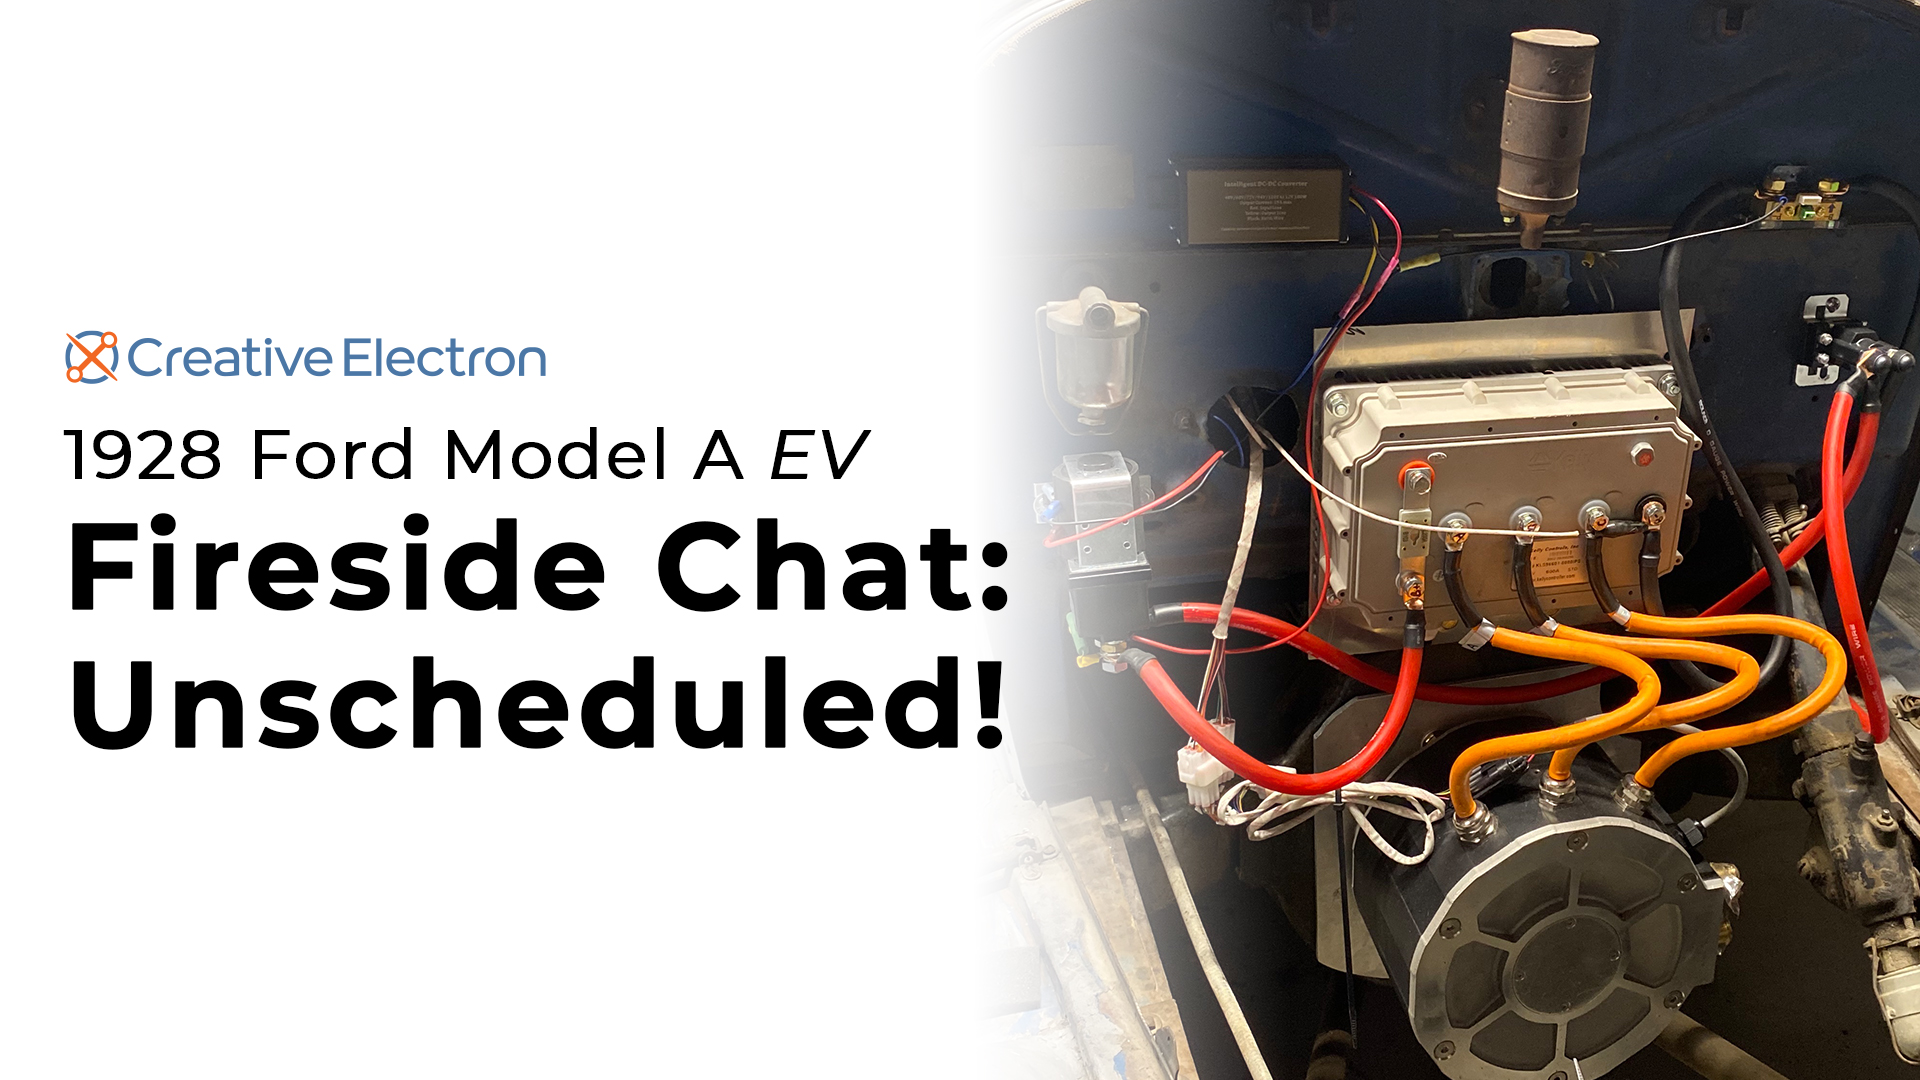 Fireside Chat: Unscheduled!